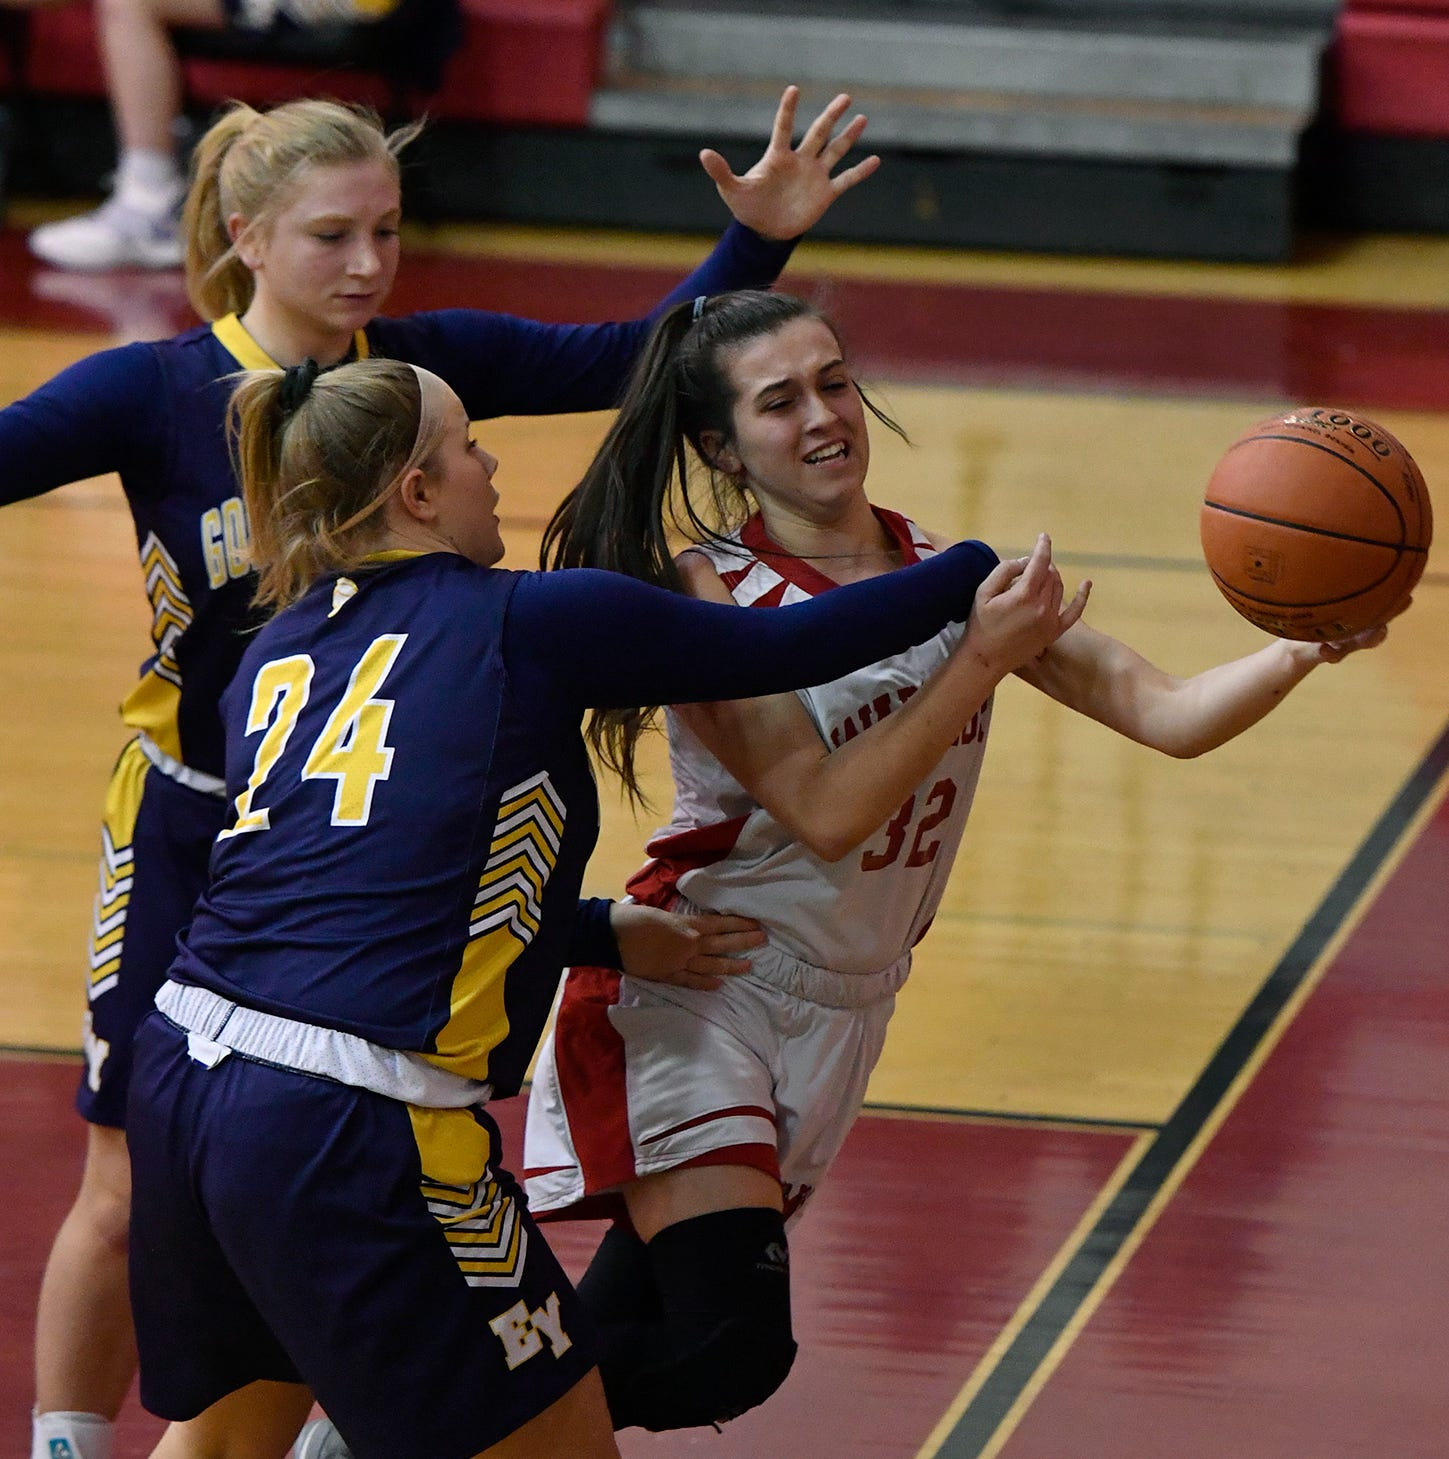 GIRLS' BASKETBALL, MONDAY, JAN. 14: Susquehannock cools off sizzling Eastern York